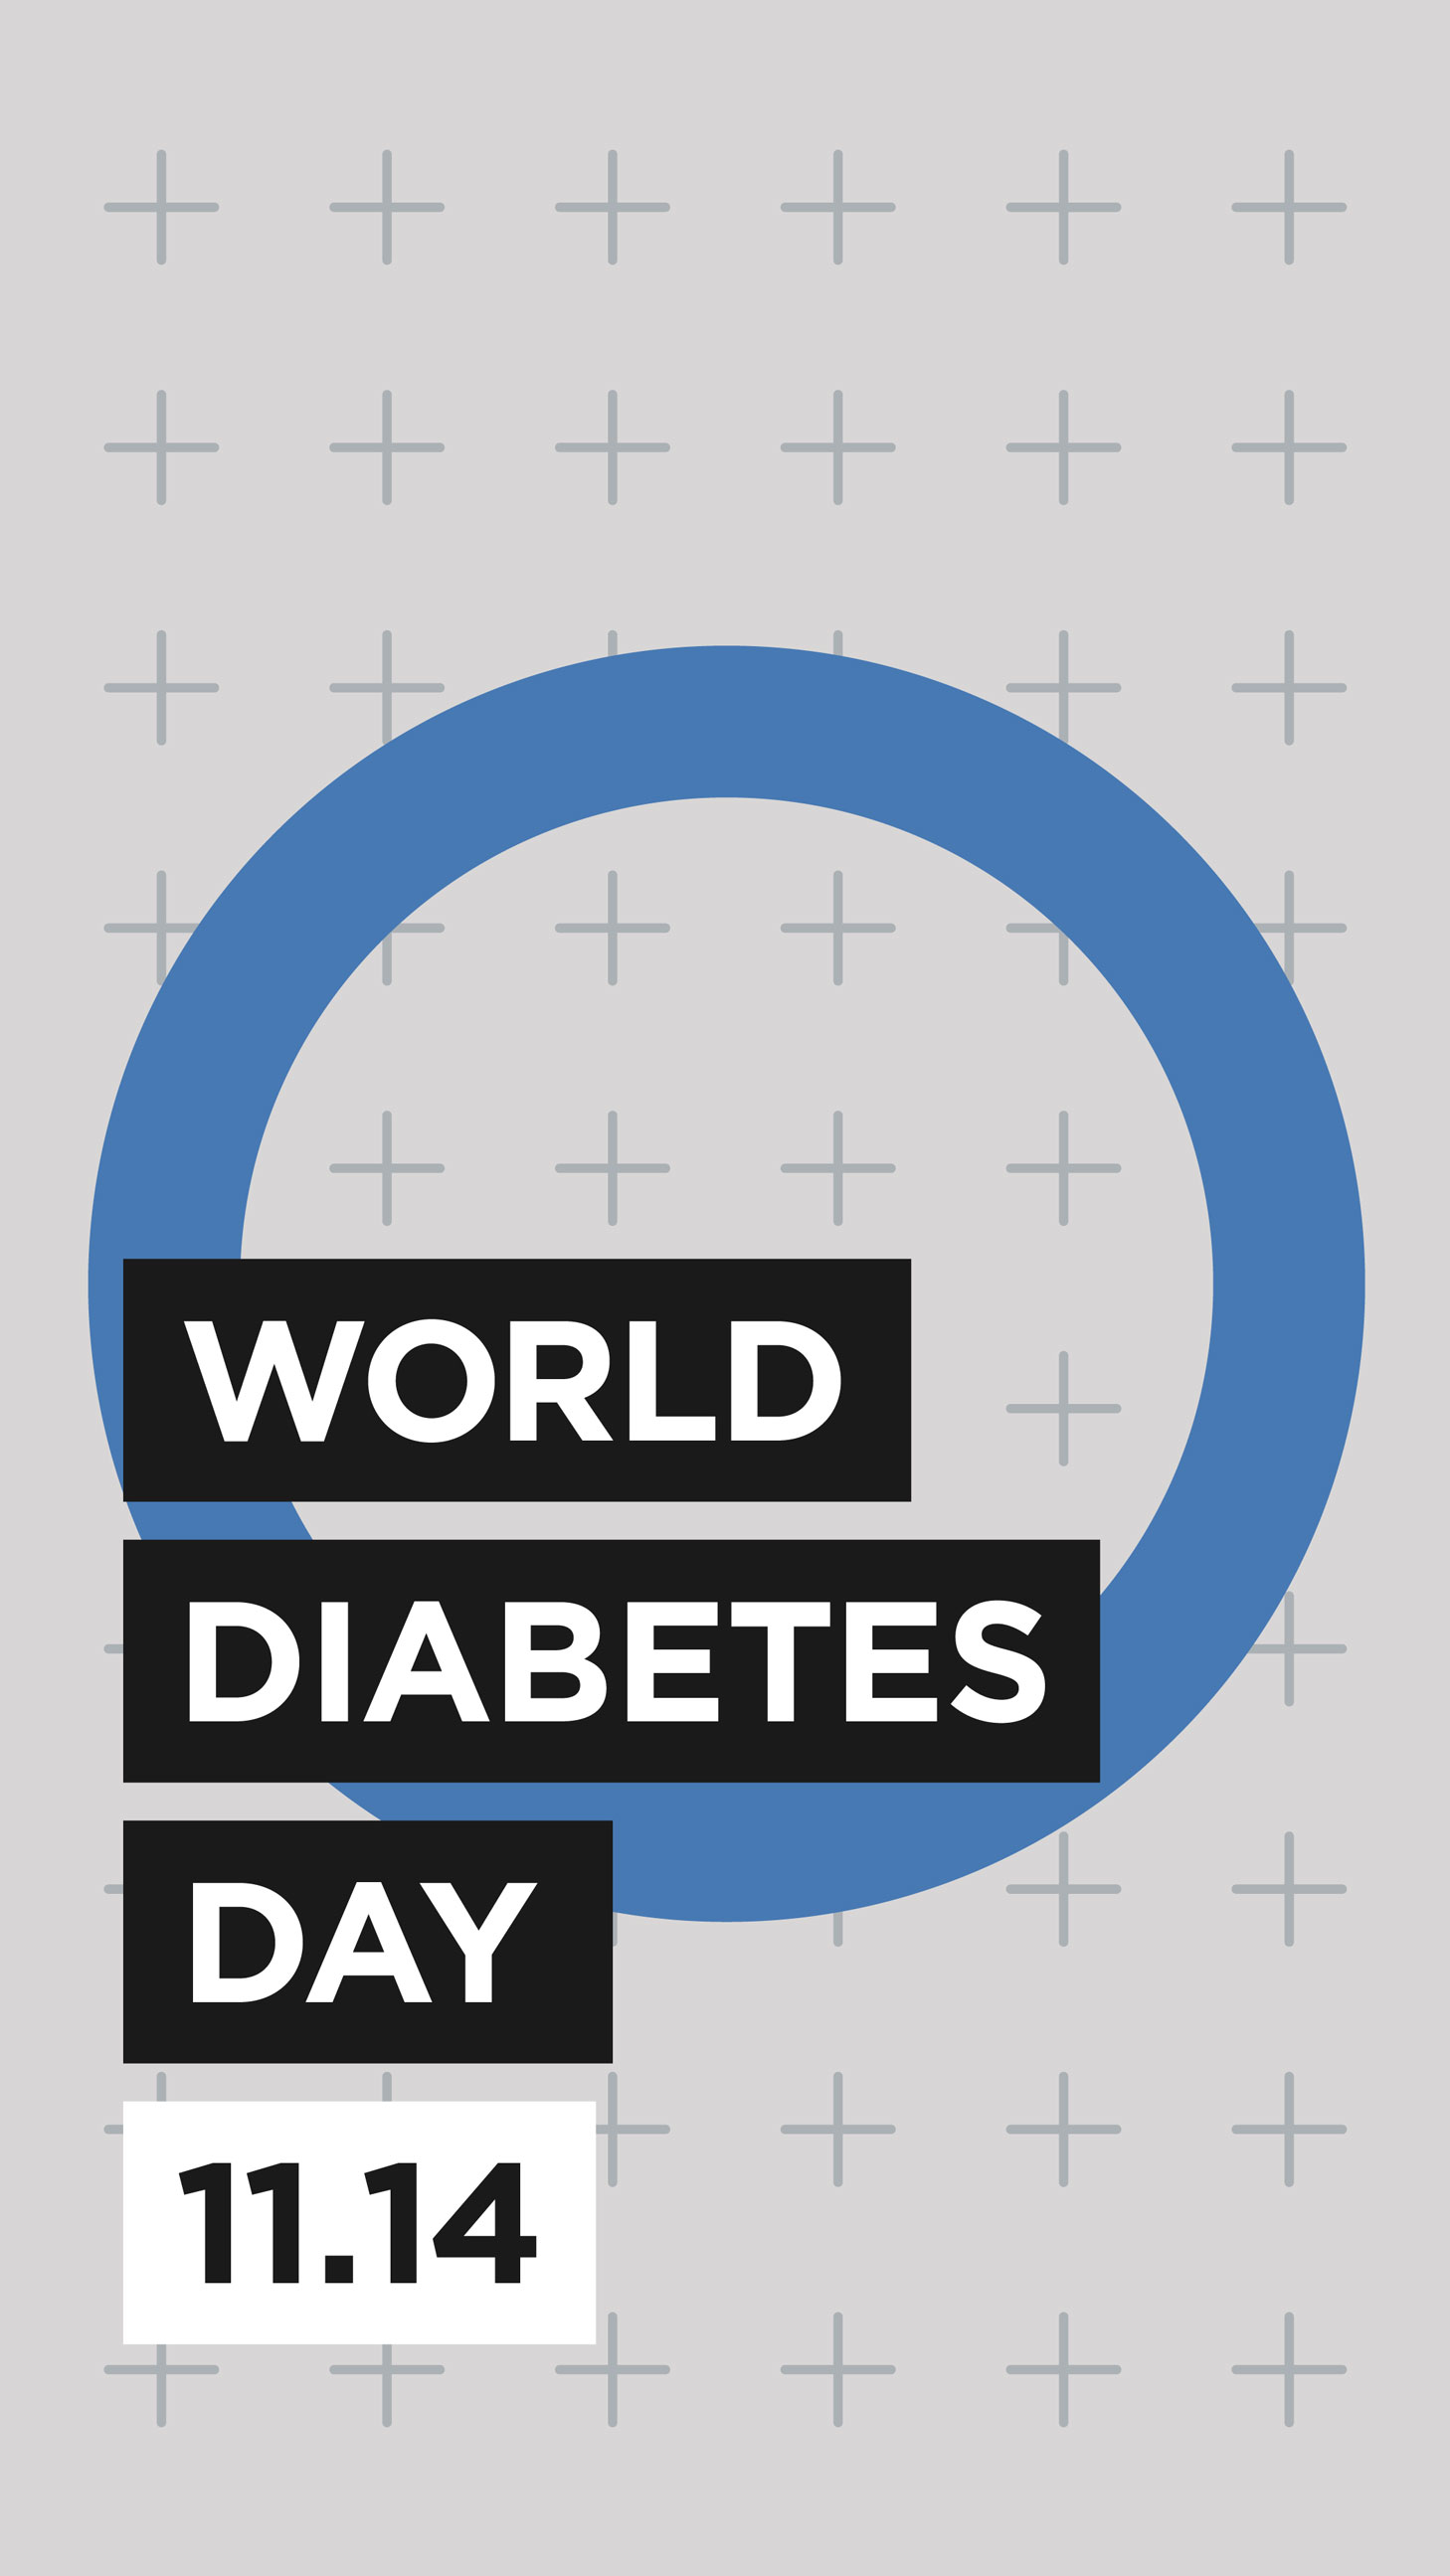 WorldDiabetesDay